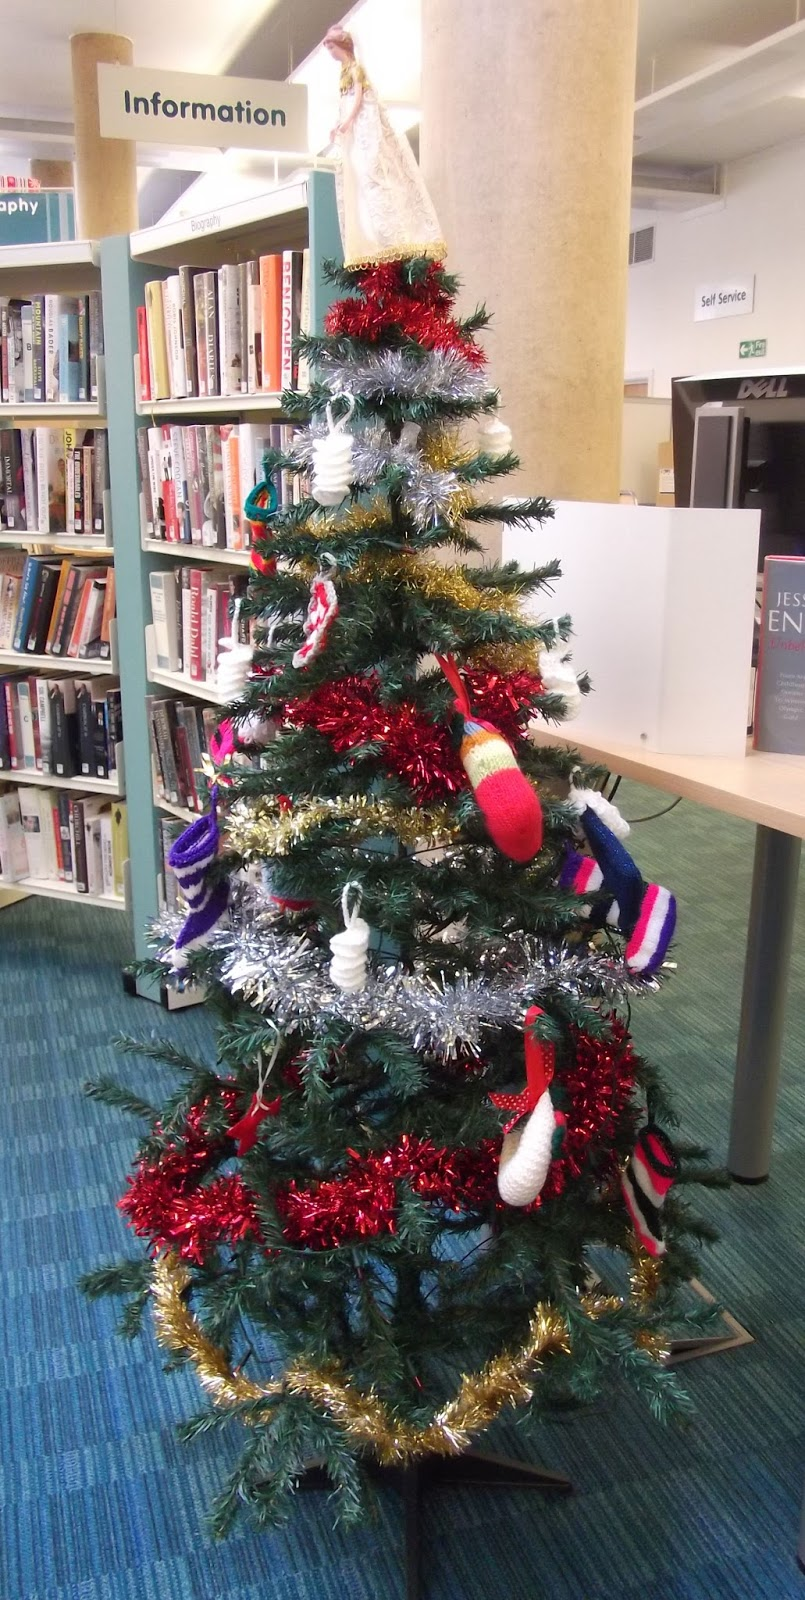 in 2015 huntingdon library asked the knitlit group that meets there if members would make knitted decorations for the forthcoming christmas tree - Library Christmas Decorations